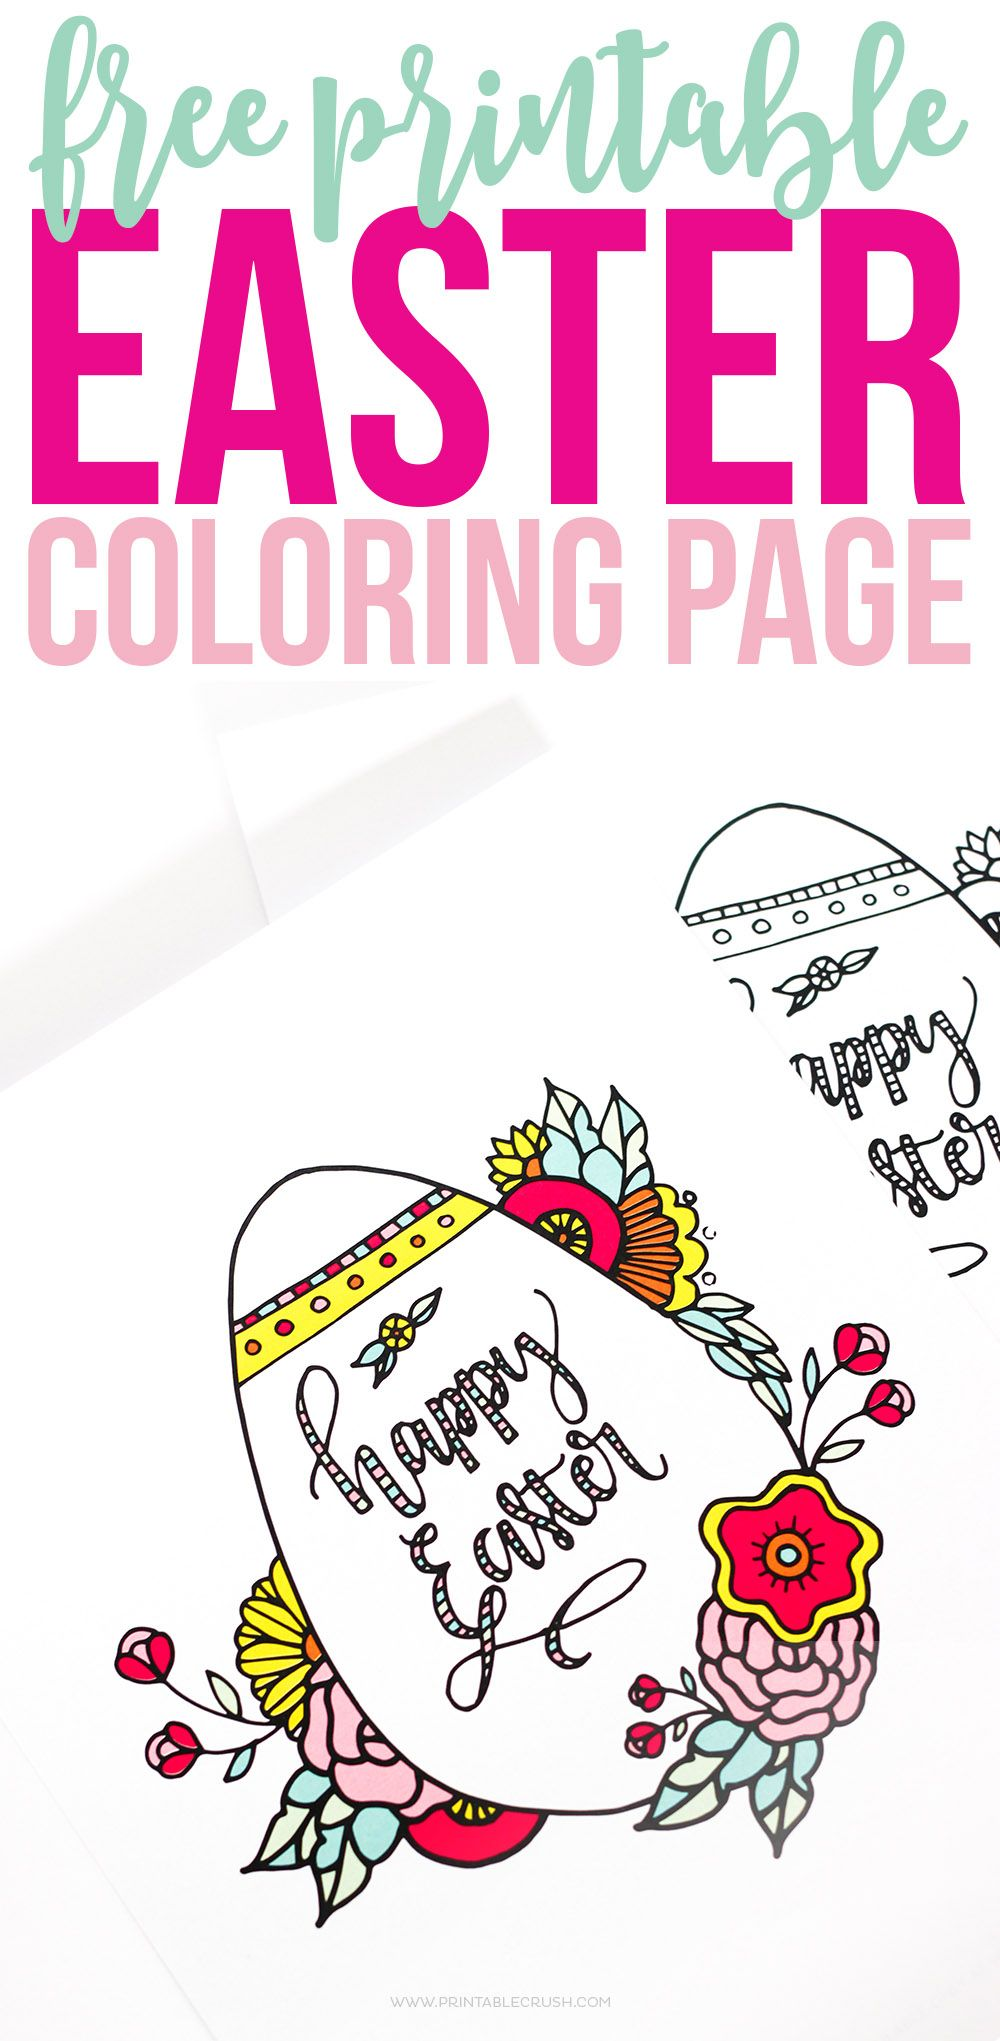 Easter Coloring Pages - FREE Printable Kids Love! | Easy Recipes and ...